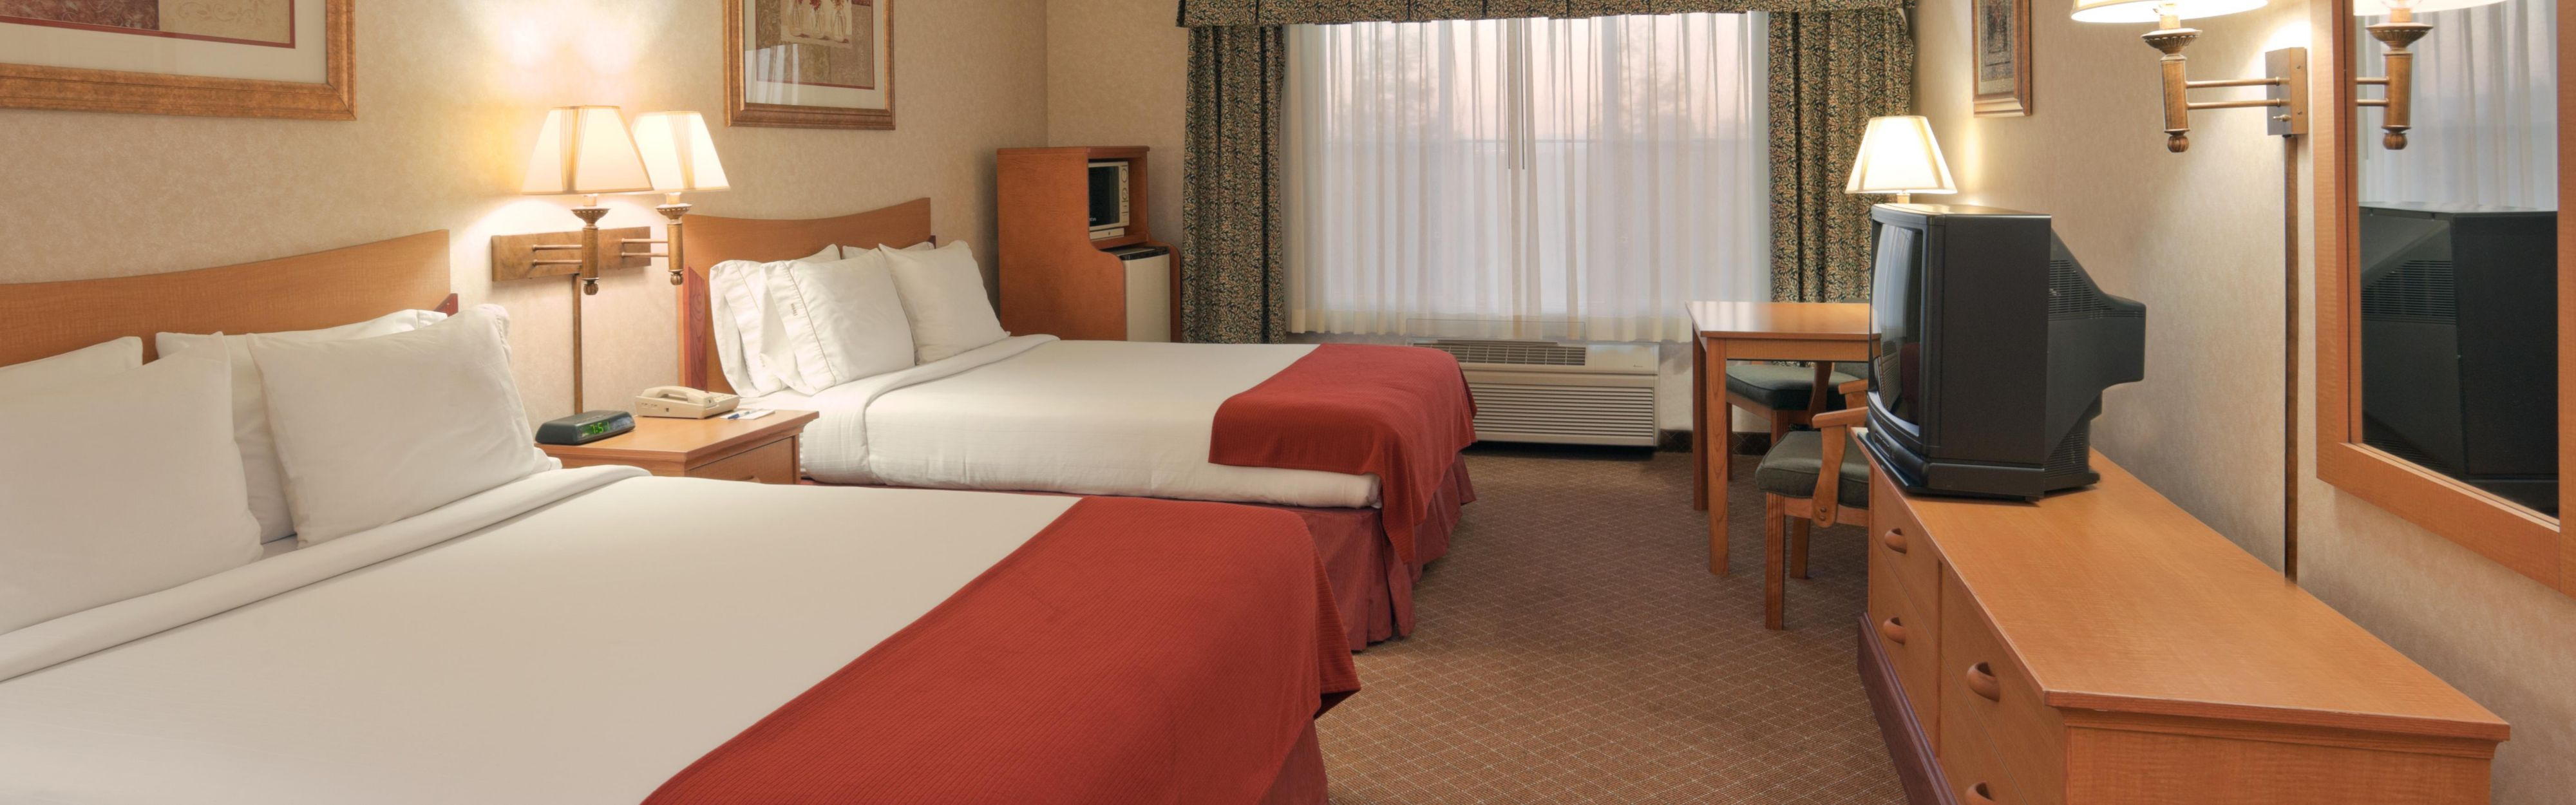 Holiday Inn Express & Suites Tracy image 1